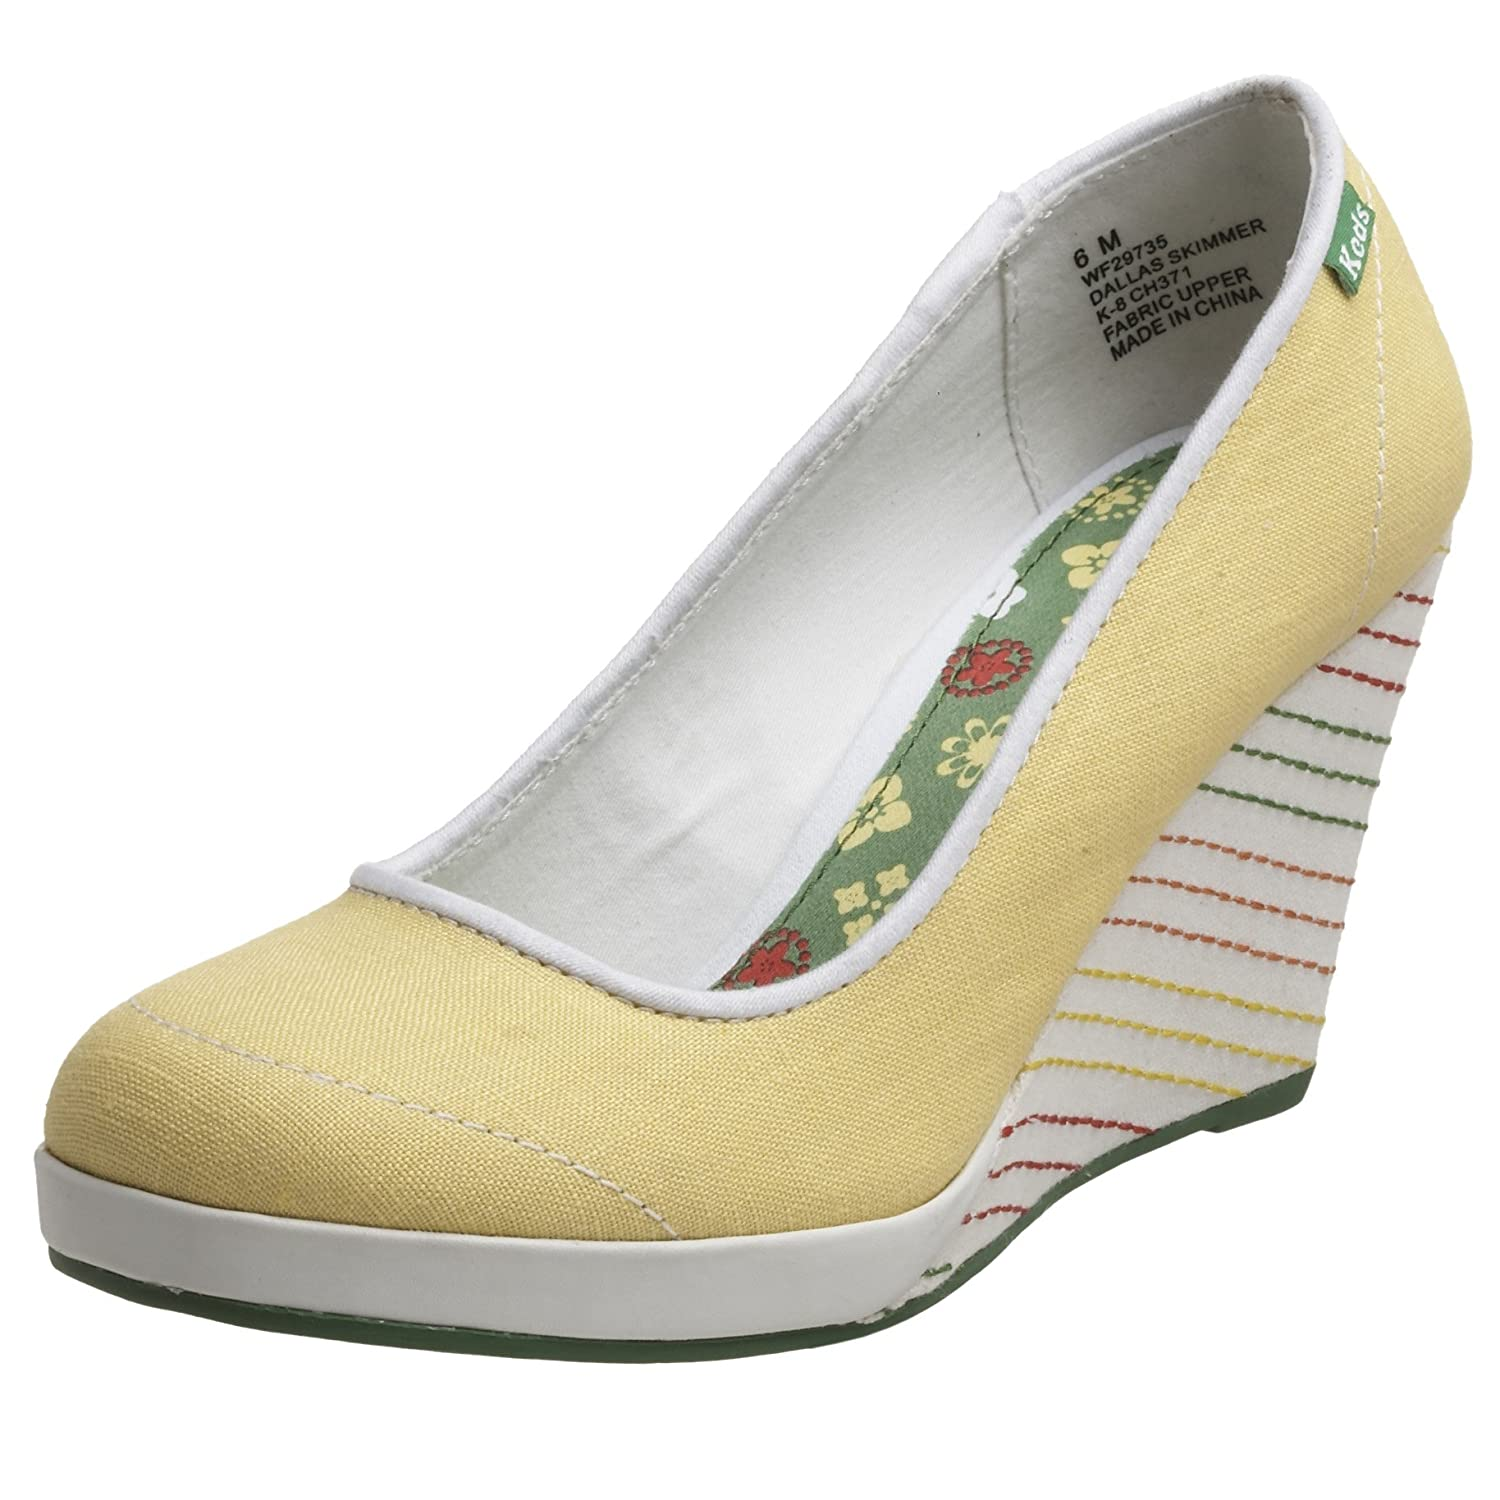 Keds Women's Dallas Skimmer Wedge - Free Overnight Shipping & Return Shipping: Endless.com